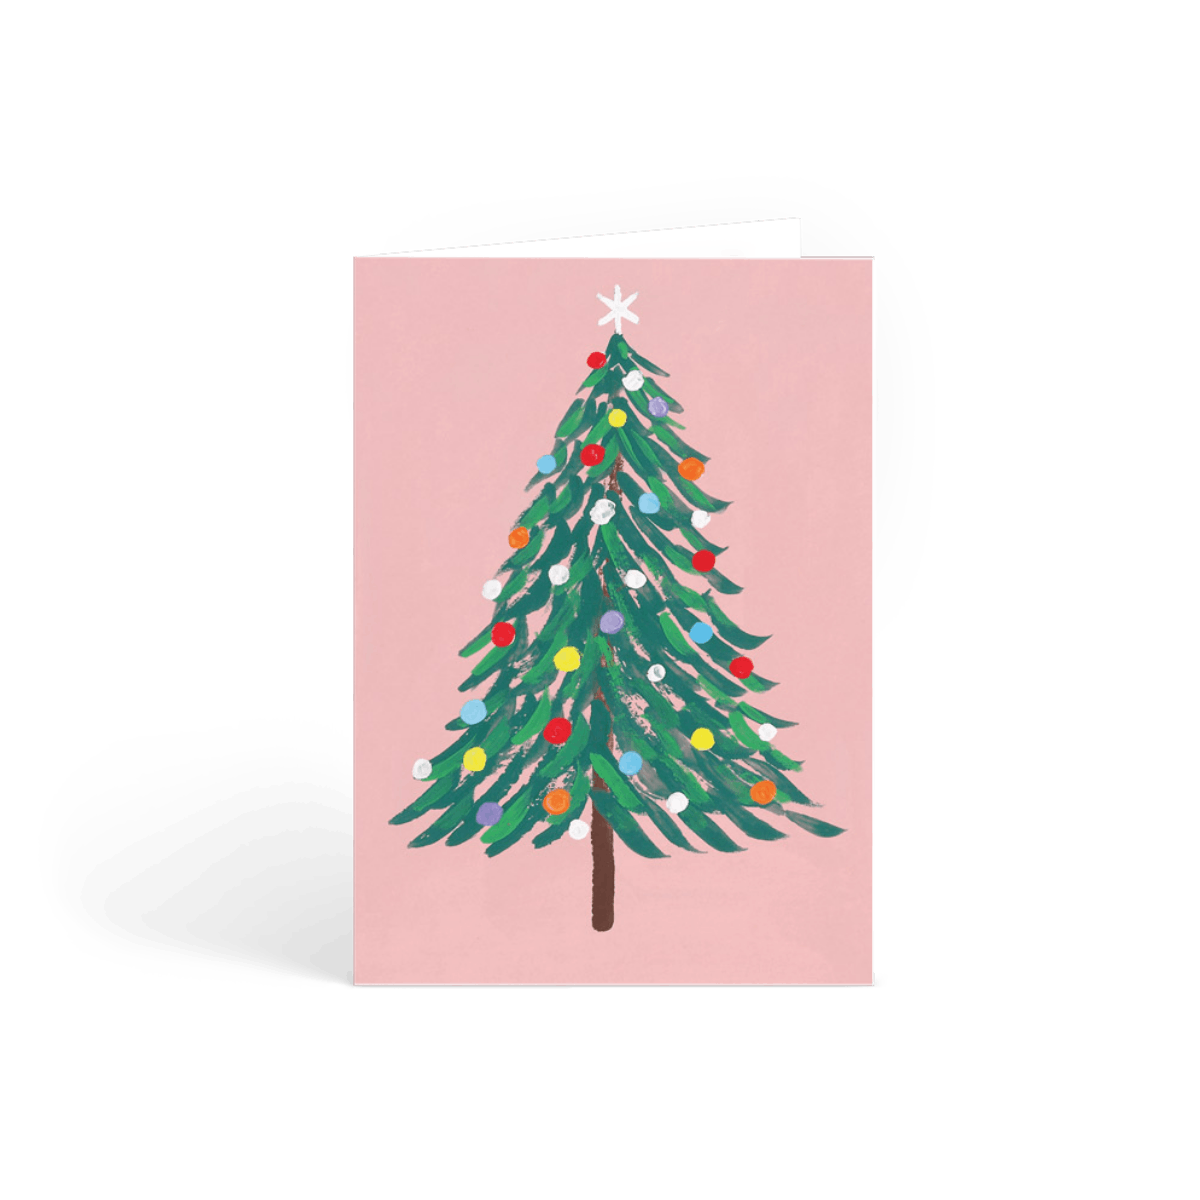 Https%3a%2f%2fwww.papier.com%2fproduct image%2f30521%2f2%2fchristmas baubles 7689 front 1568146510.png?ixlib=rb 1.1